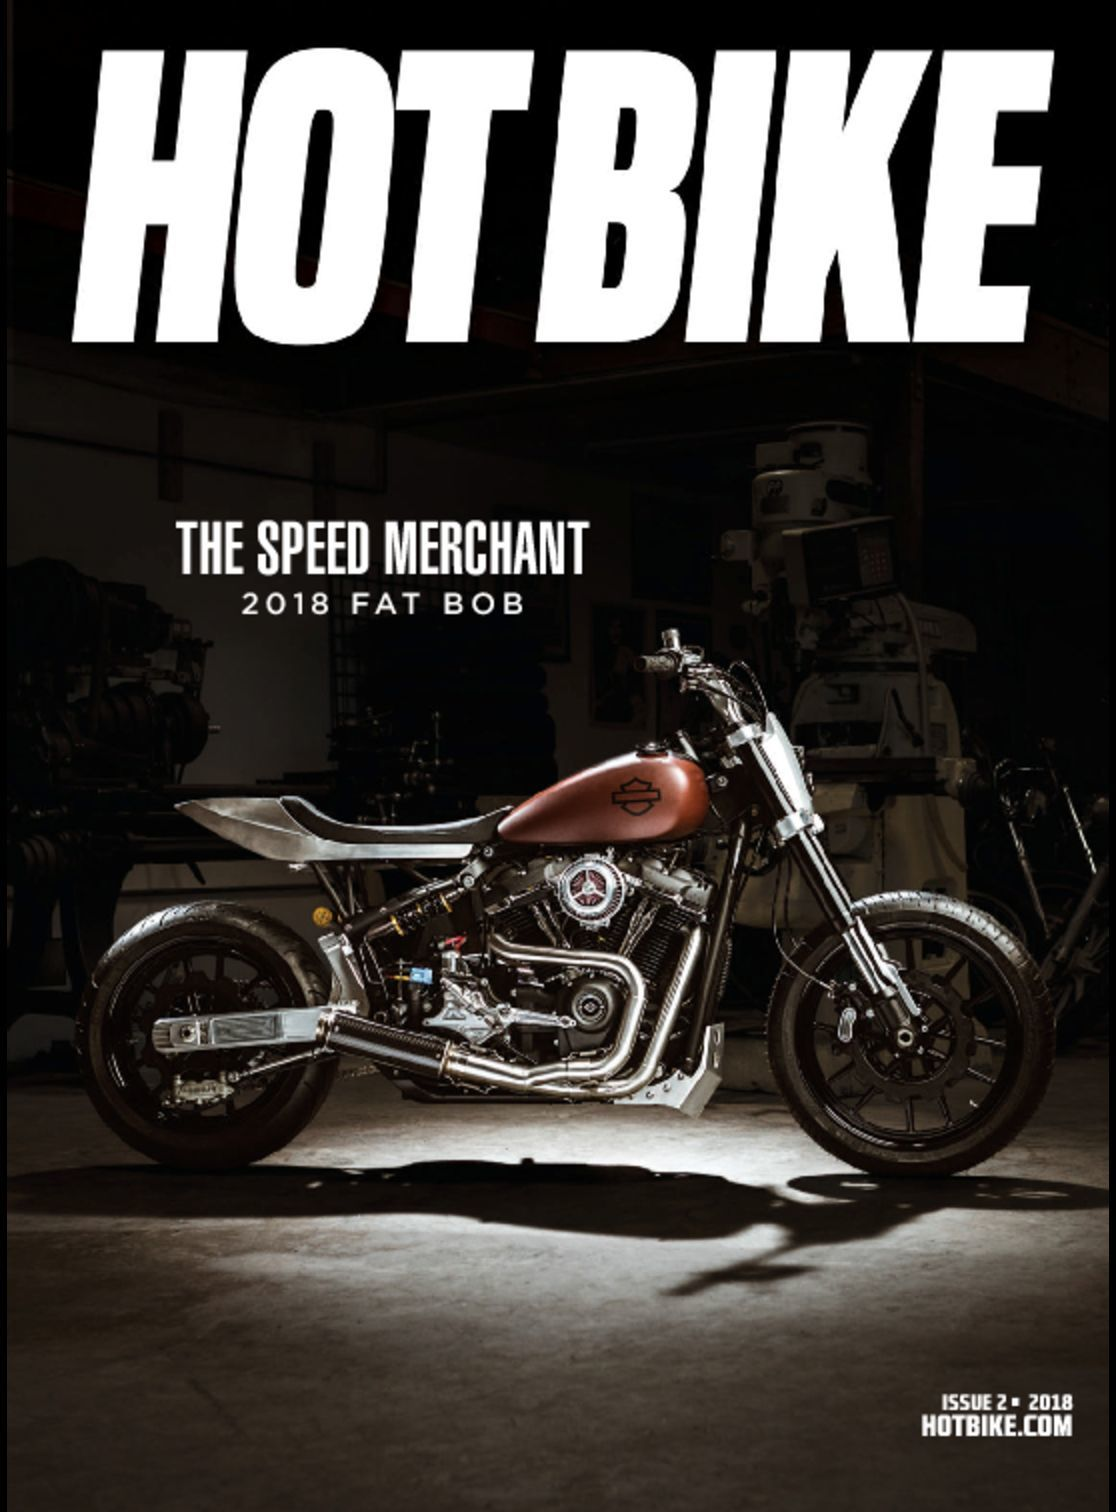 bike magazine motorcycle custom discountmags june issue april